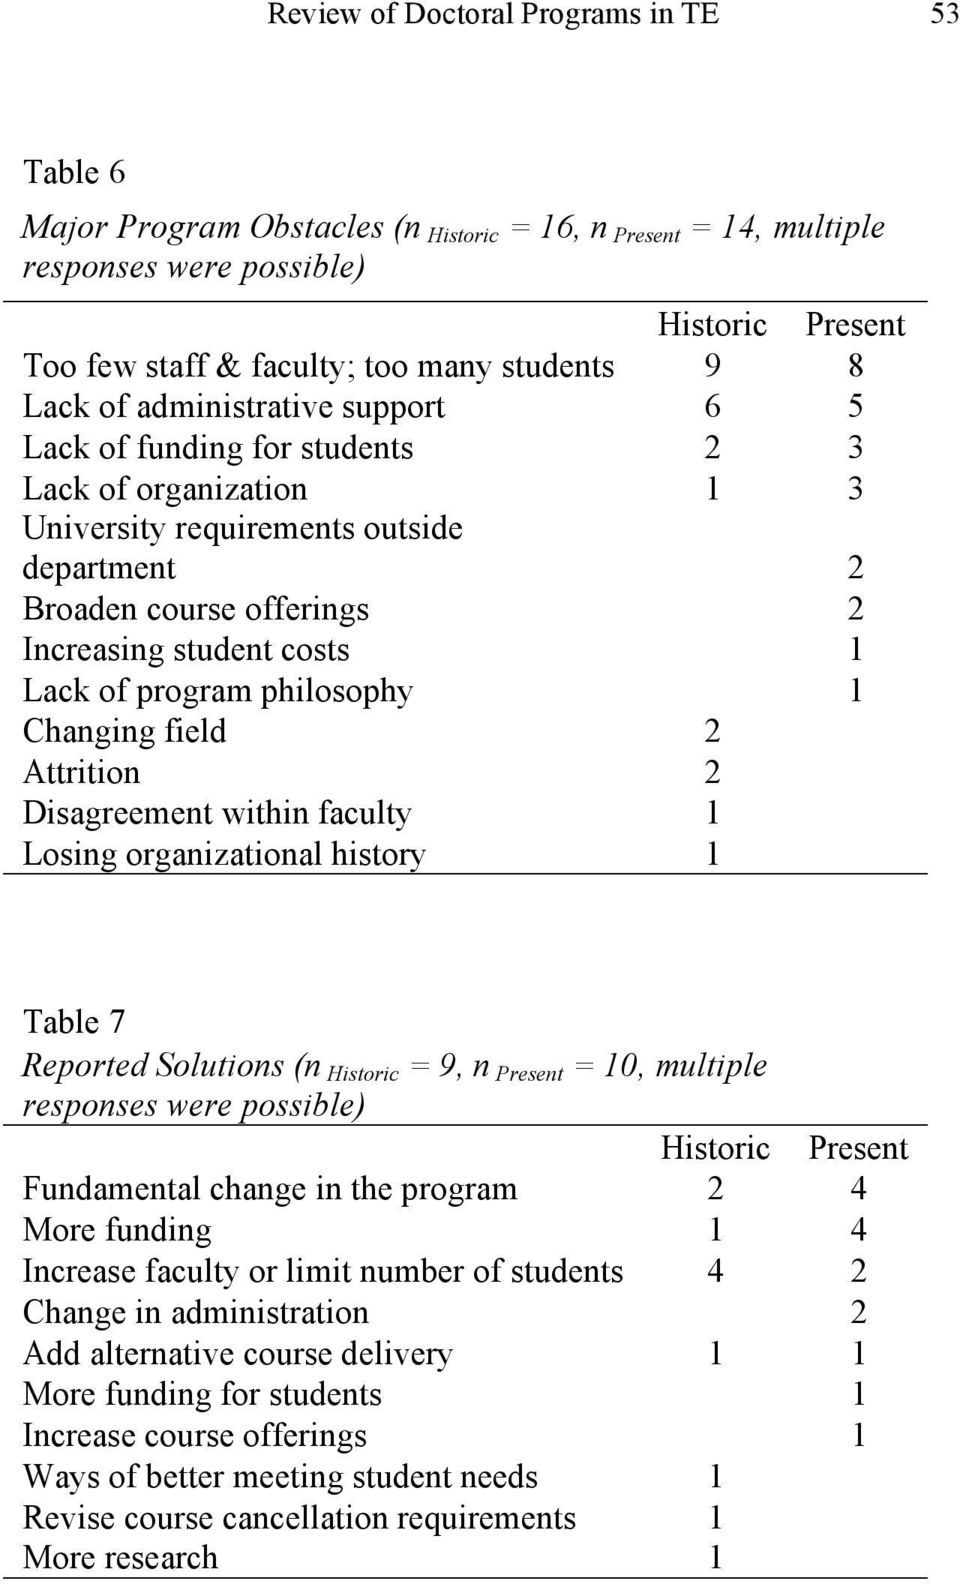 of program philosophy 1 Changing field 2 Attrition 2 Disagreement within faculty 1 Losing organizational history 1 Table 7 Reported Solutions (n Historic = 9, n Present = 10, multiple responses were